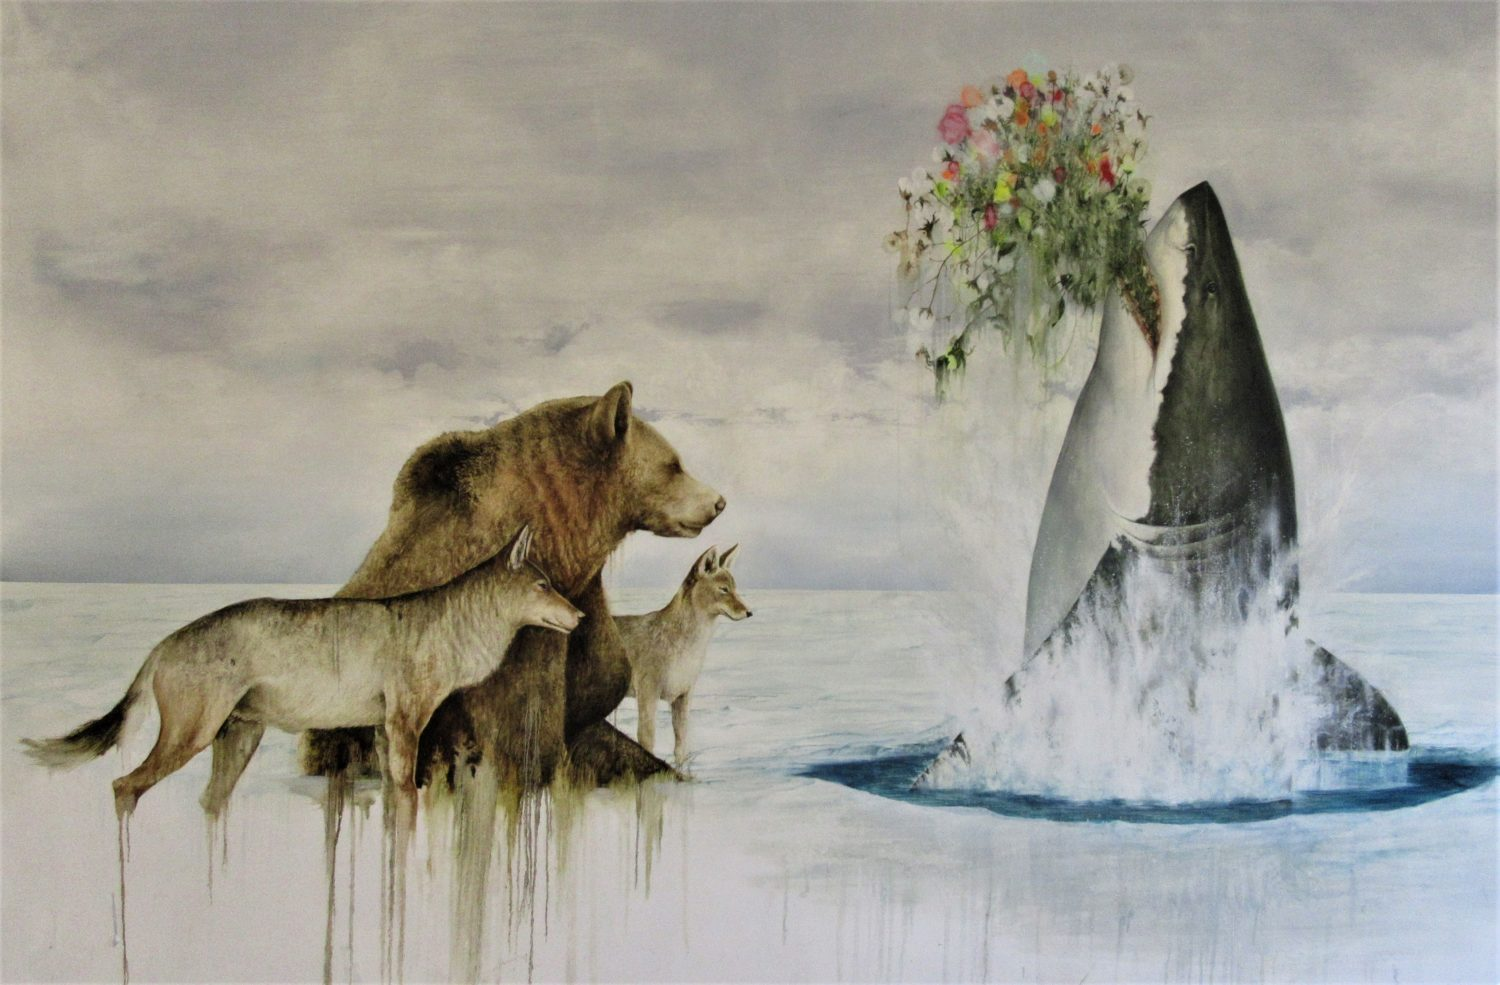 Painting by Kevin Earl Taylor showing animals and a shark with flowers in its jaws